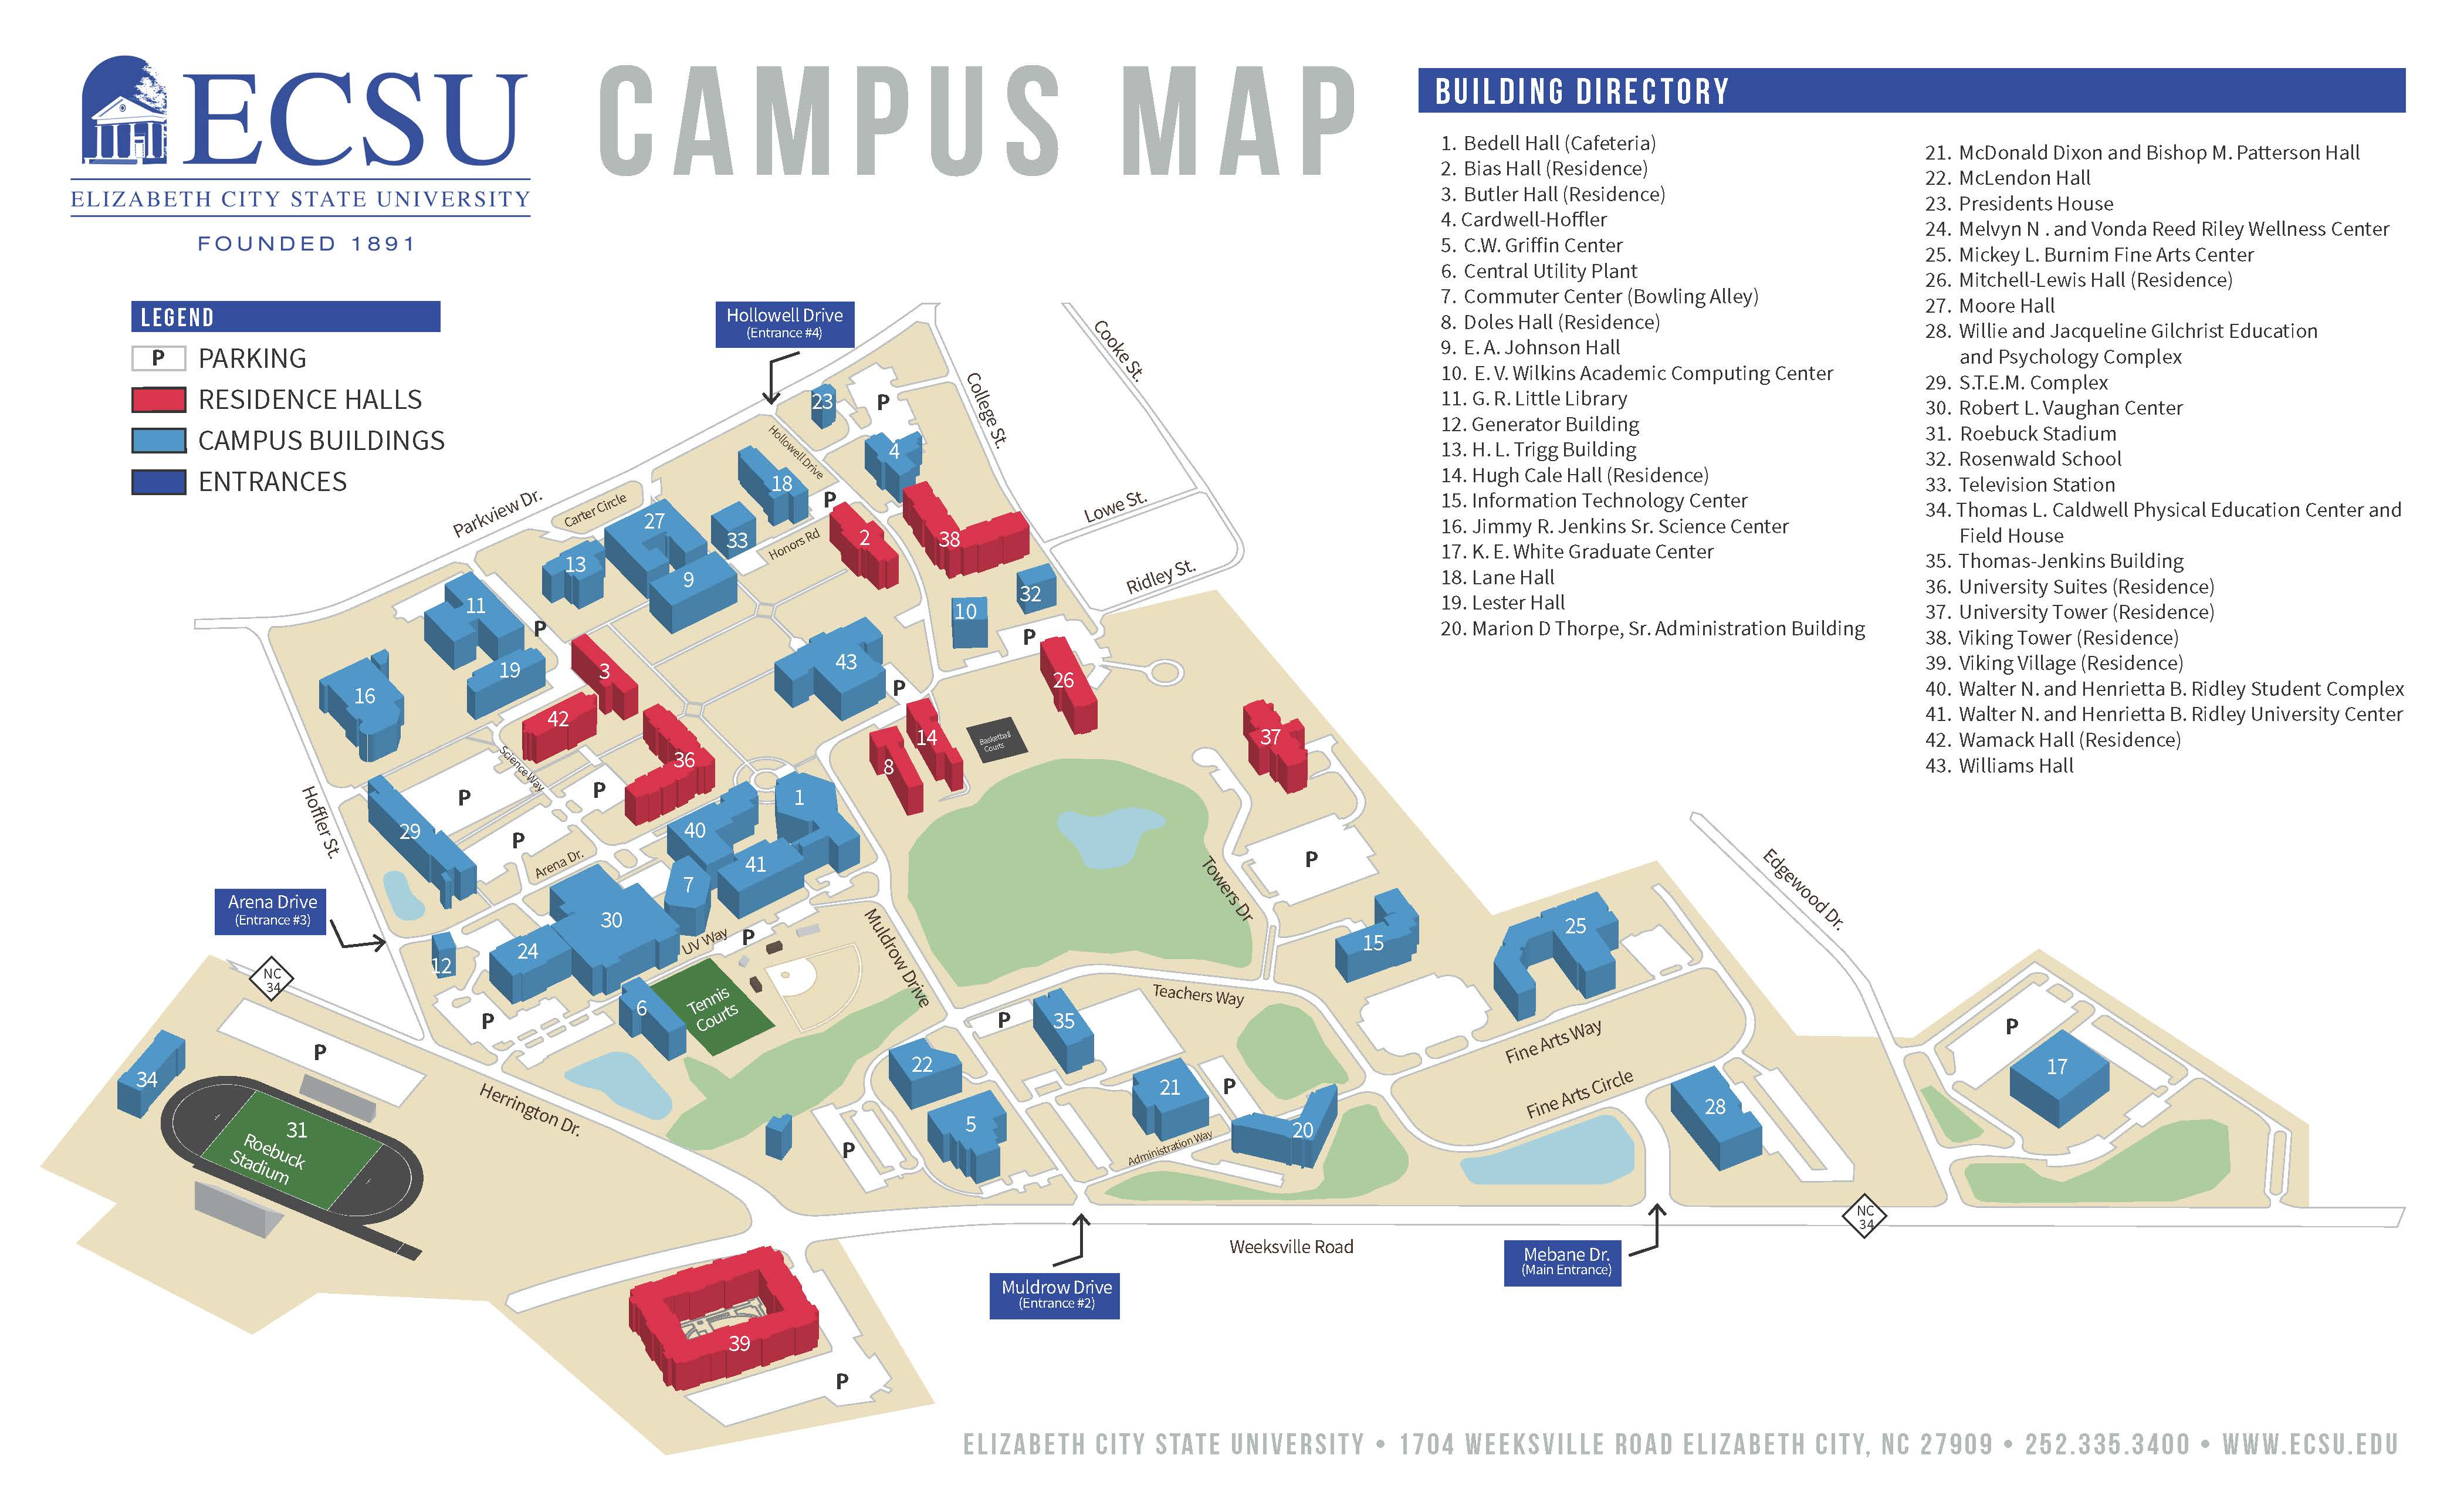 Campus Map on uw-madison campus map, vsu campus map, iona campus map, rider campus map, marquette campus map, central state university campus map, southern ct state university campus map, penn campus map, western connecticut state university campus map, yale campus map, williams college campus map, northern kentucky university campus map, csus campus map, new mexico state university campus map, wiu campus map, cal state campus map, georgia southern university campus map, sacred heart campus map, university of hartford campus map, ecsu campus map,